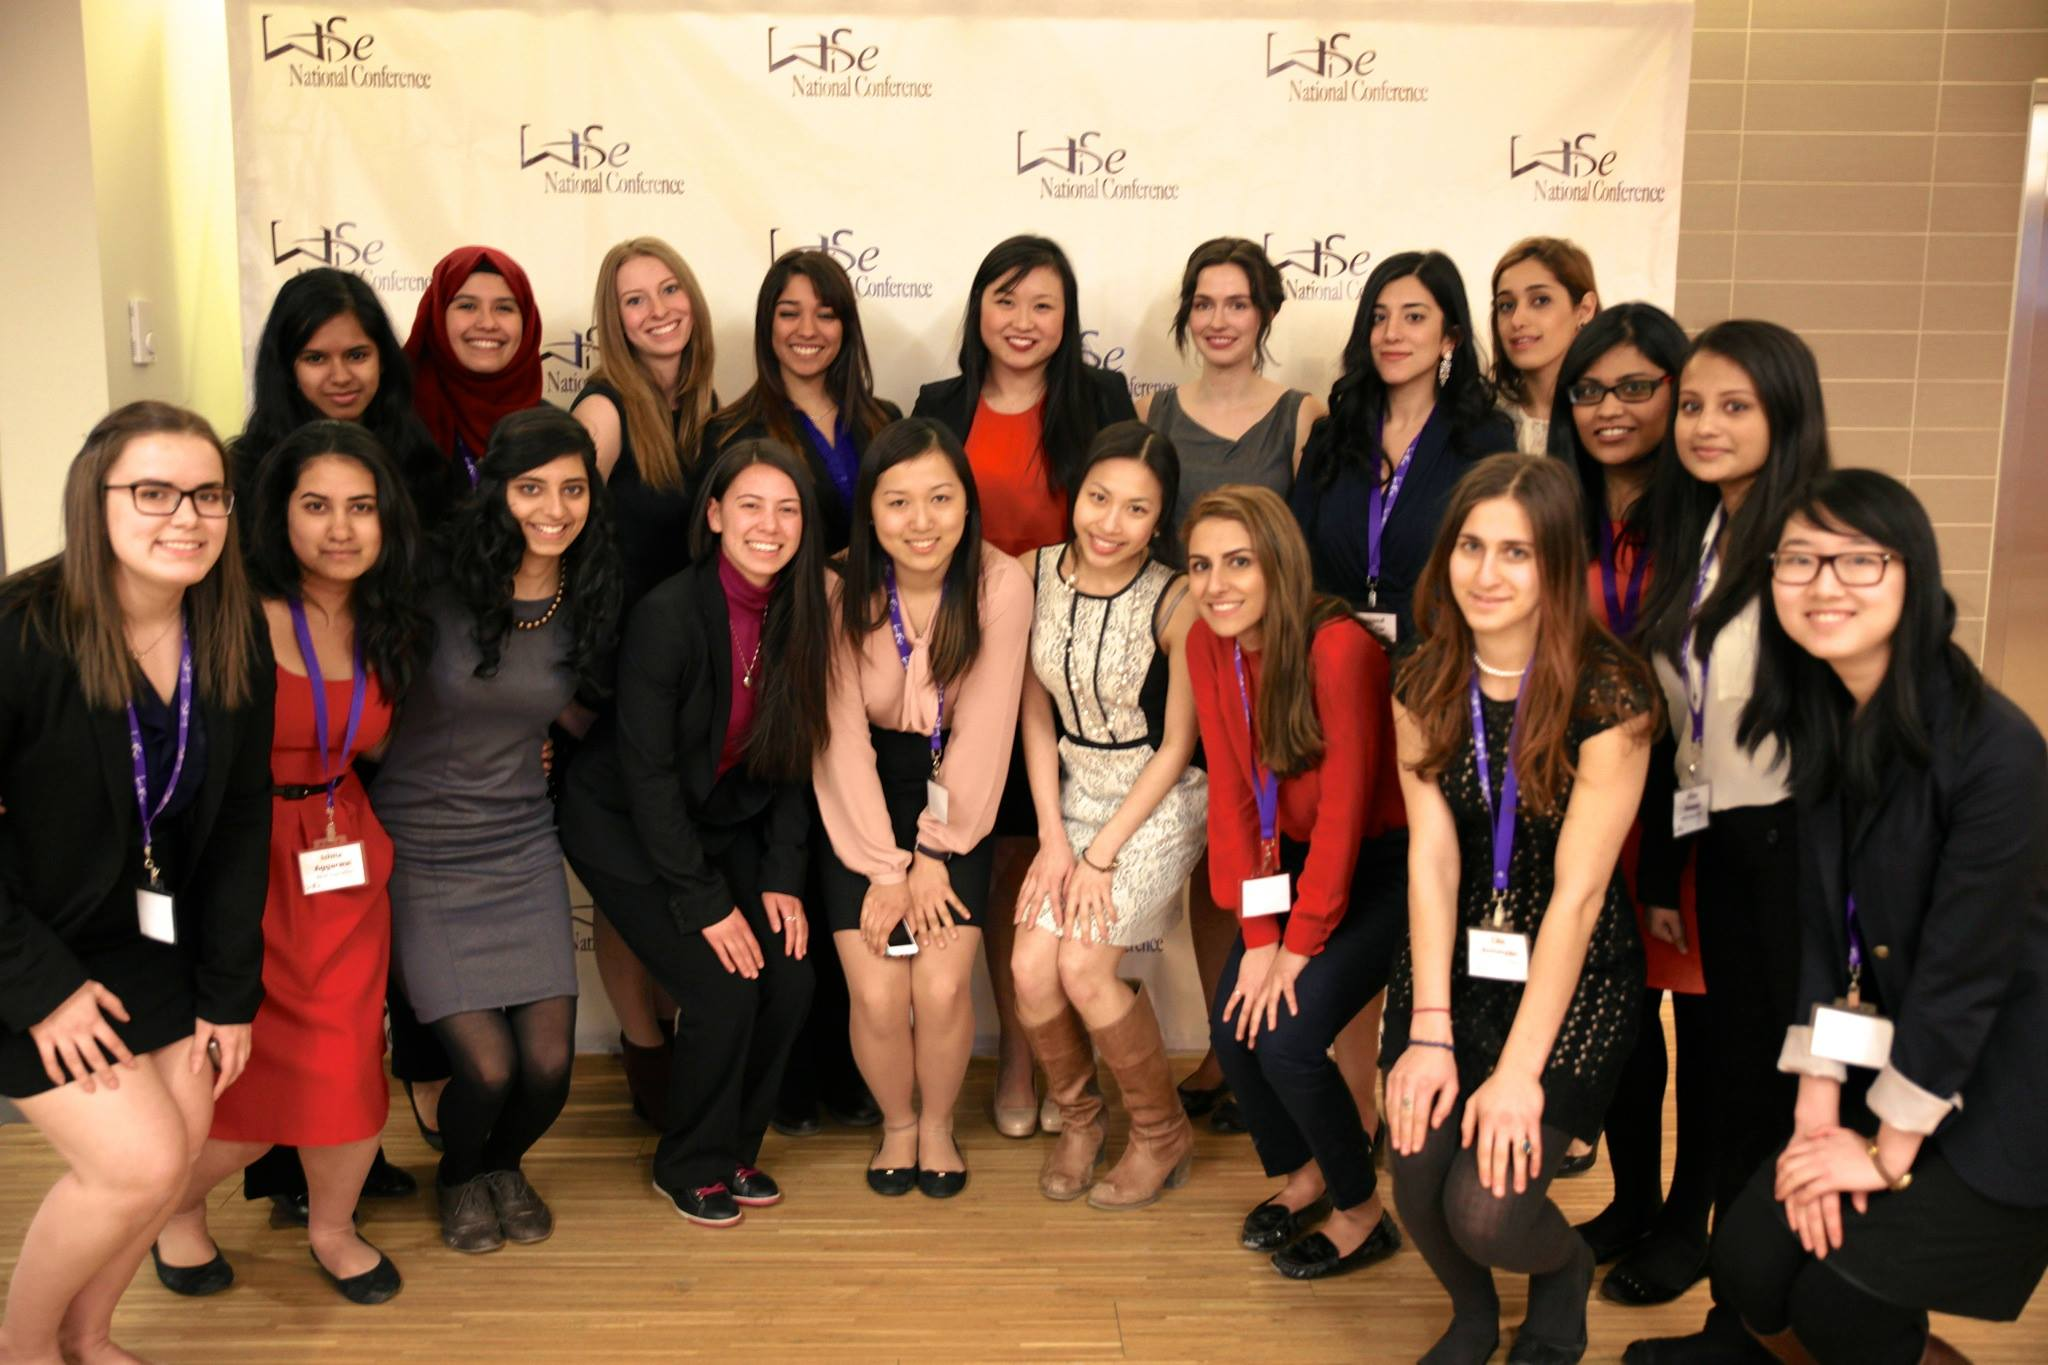 WISE National Conference to upcoming participants: build your own legacy - U of T Engineering News